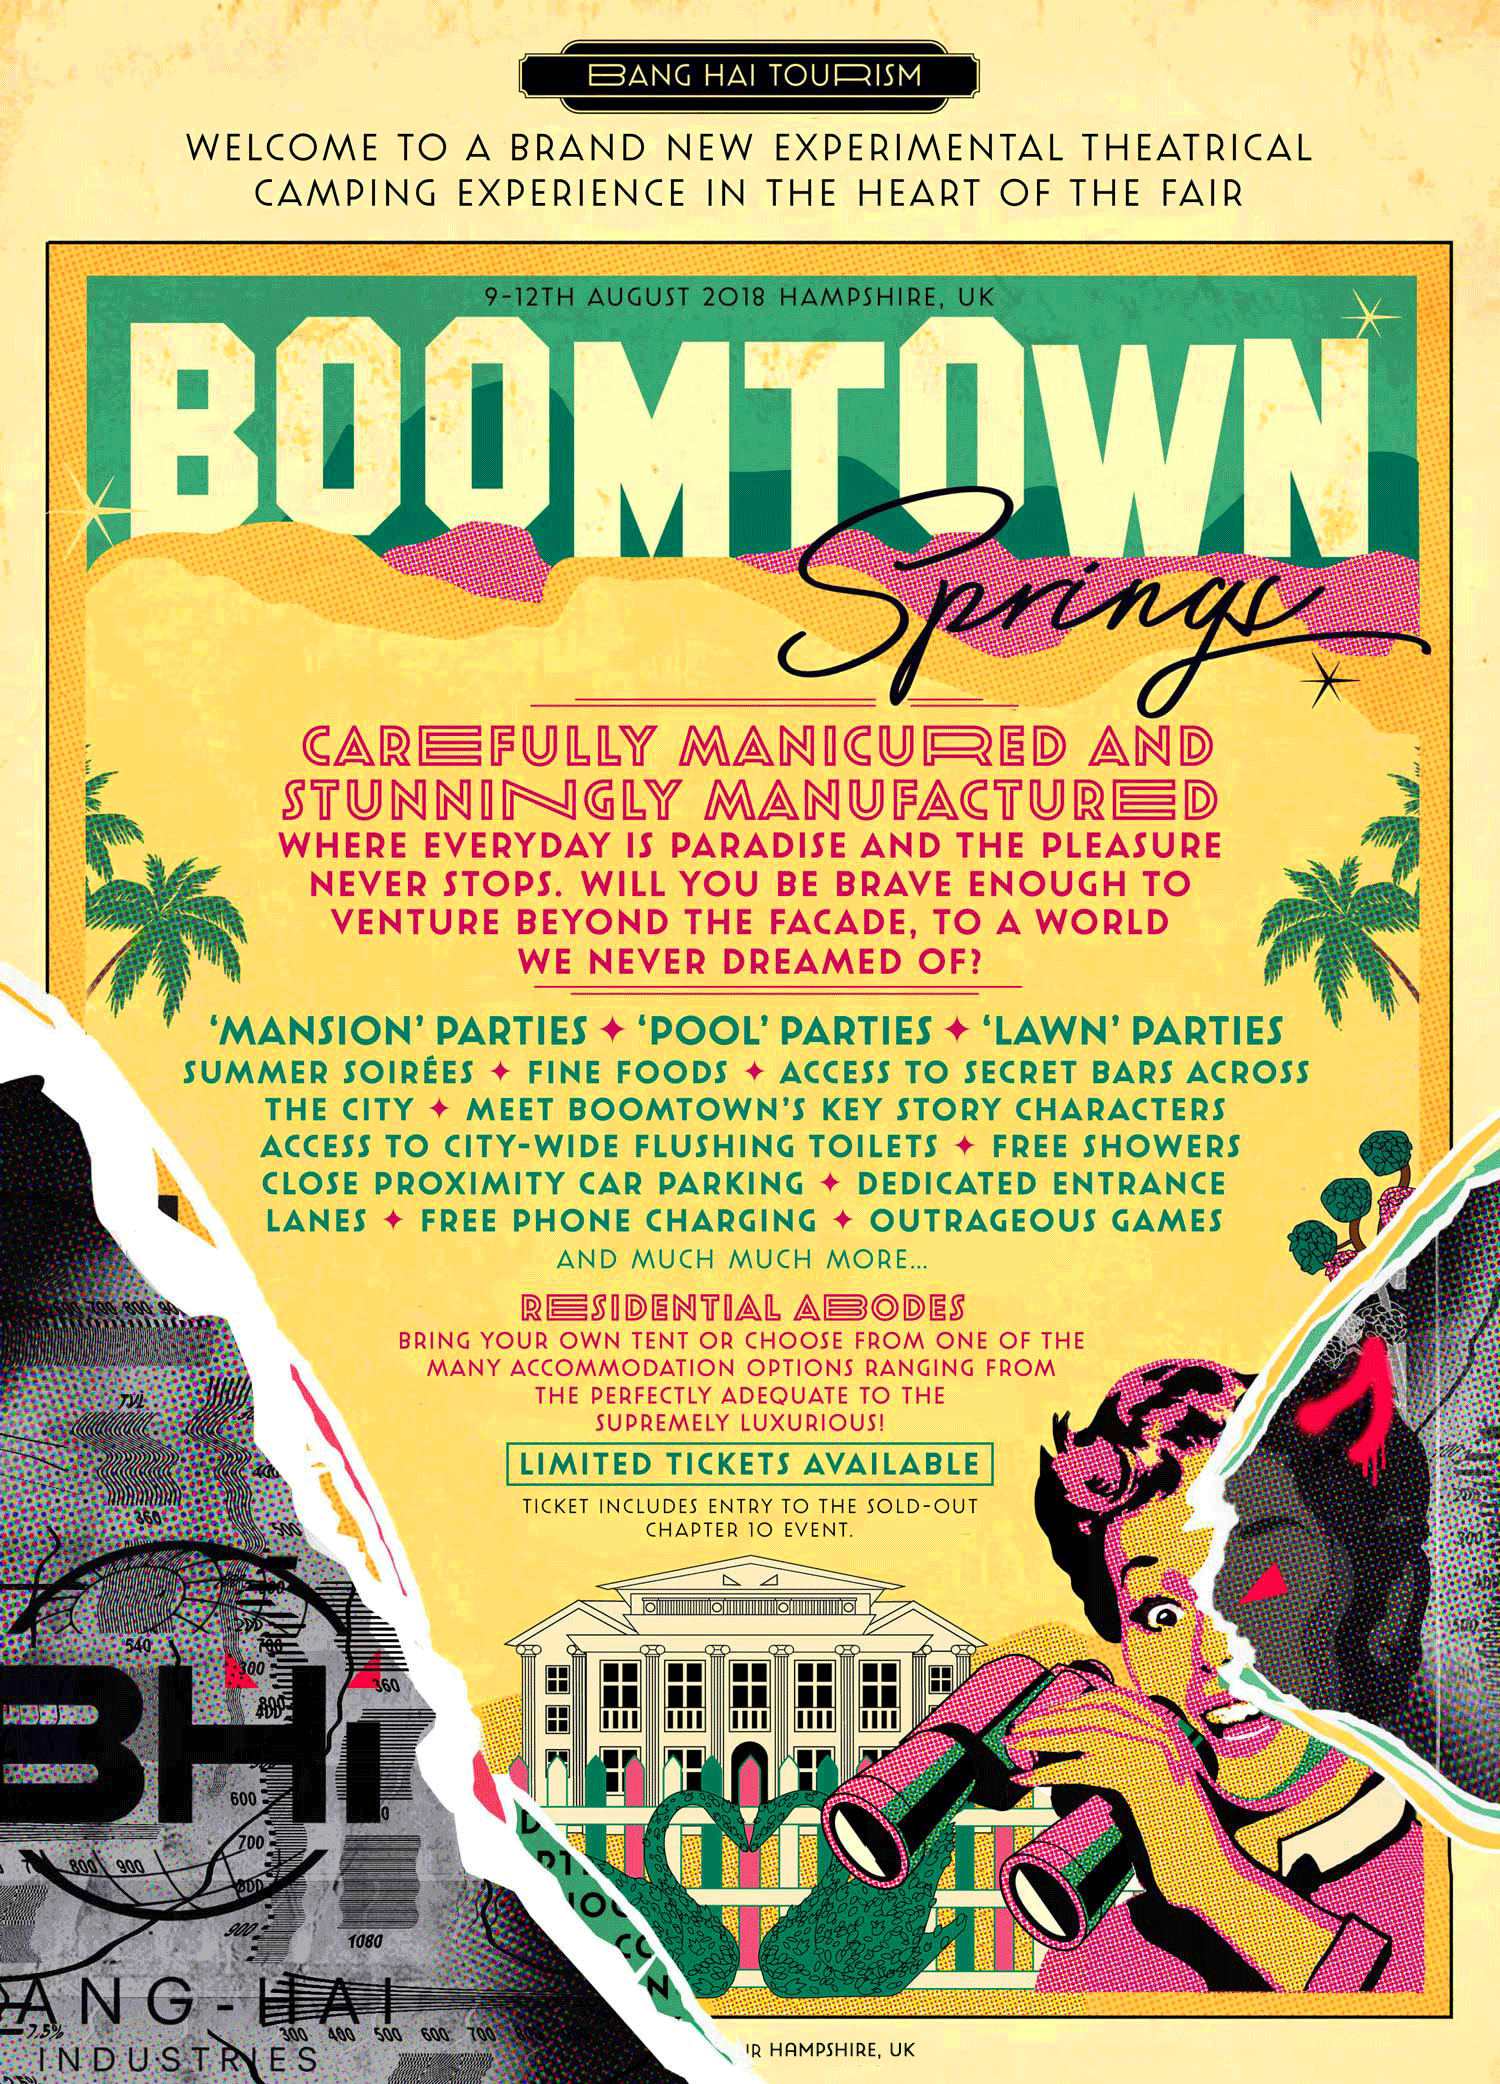 Boomtown Springs Accommodation Options now Available!